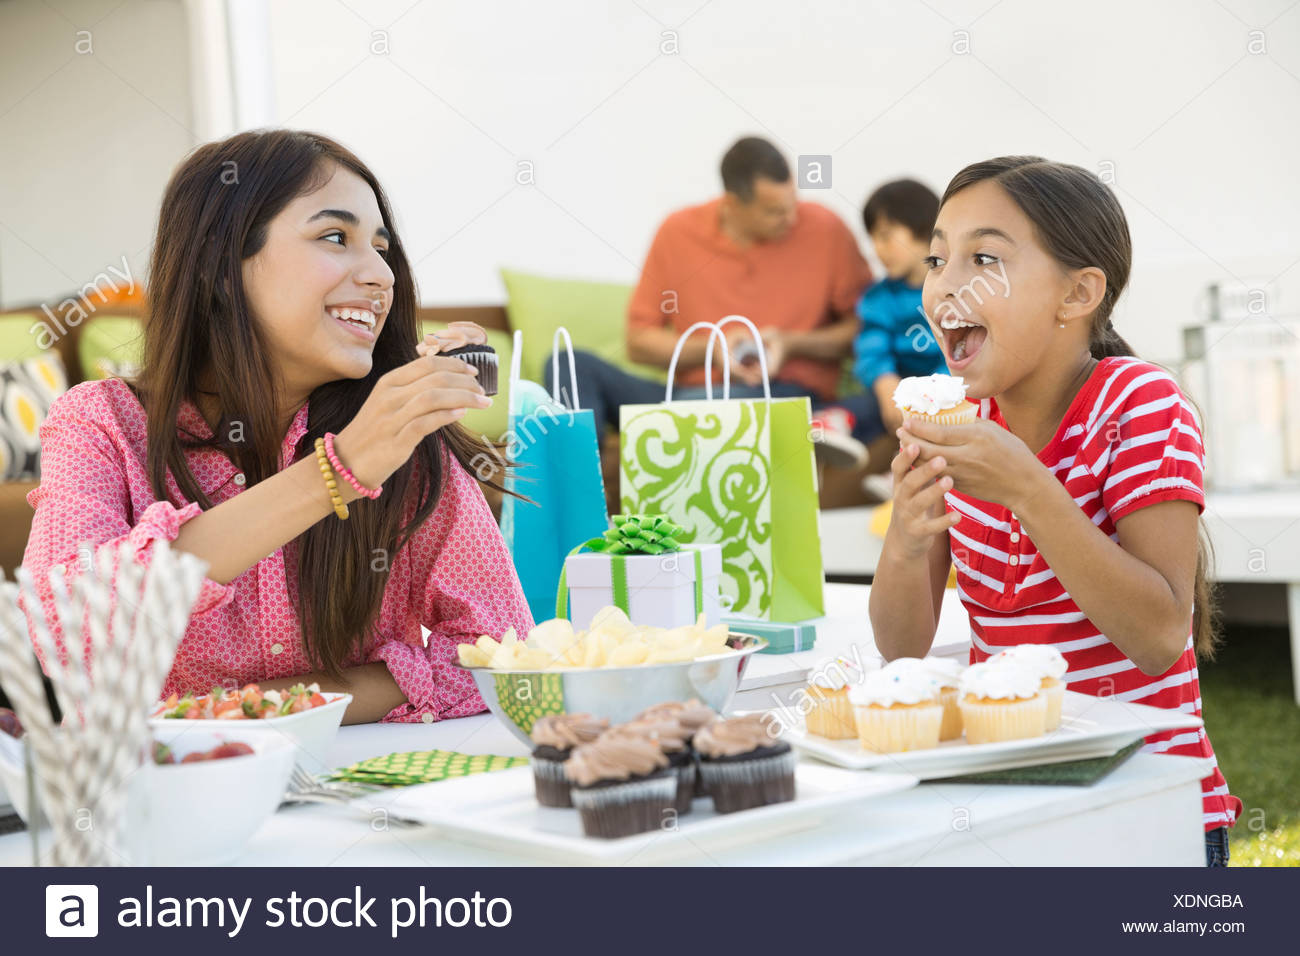 Siblings eating cupcakes at birthday party - Stock Image